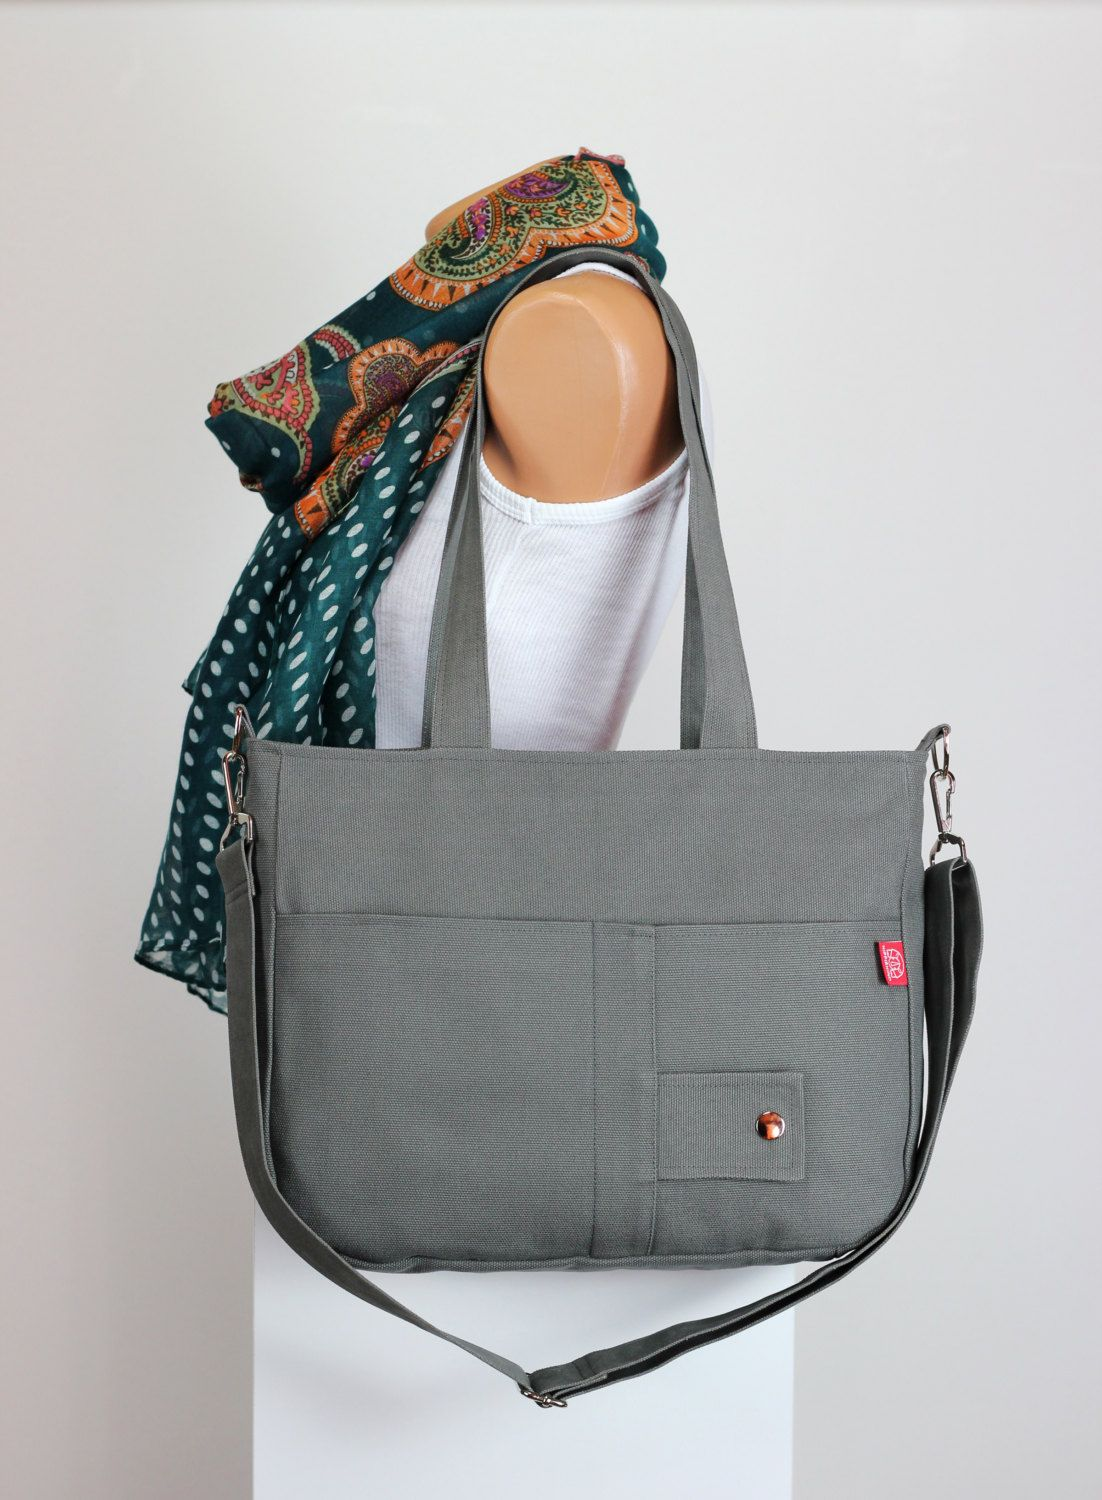 37 Gray Bag Handmade Washable Double Adjule Removable Strap Two Pocket Shoulder Hang Purse